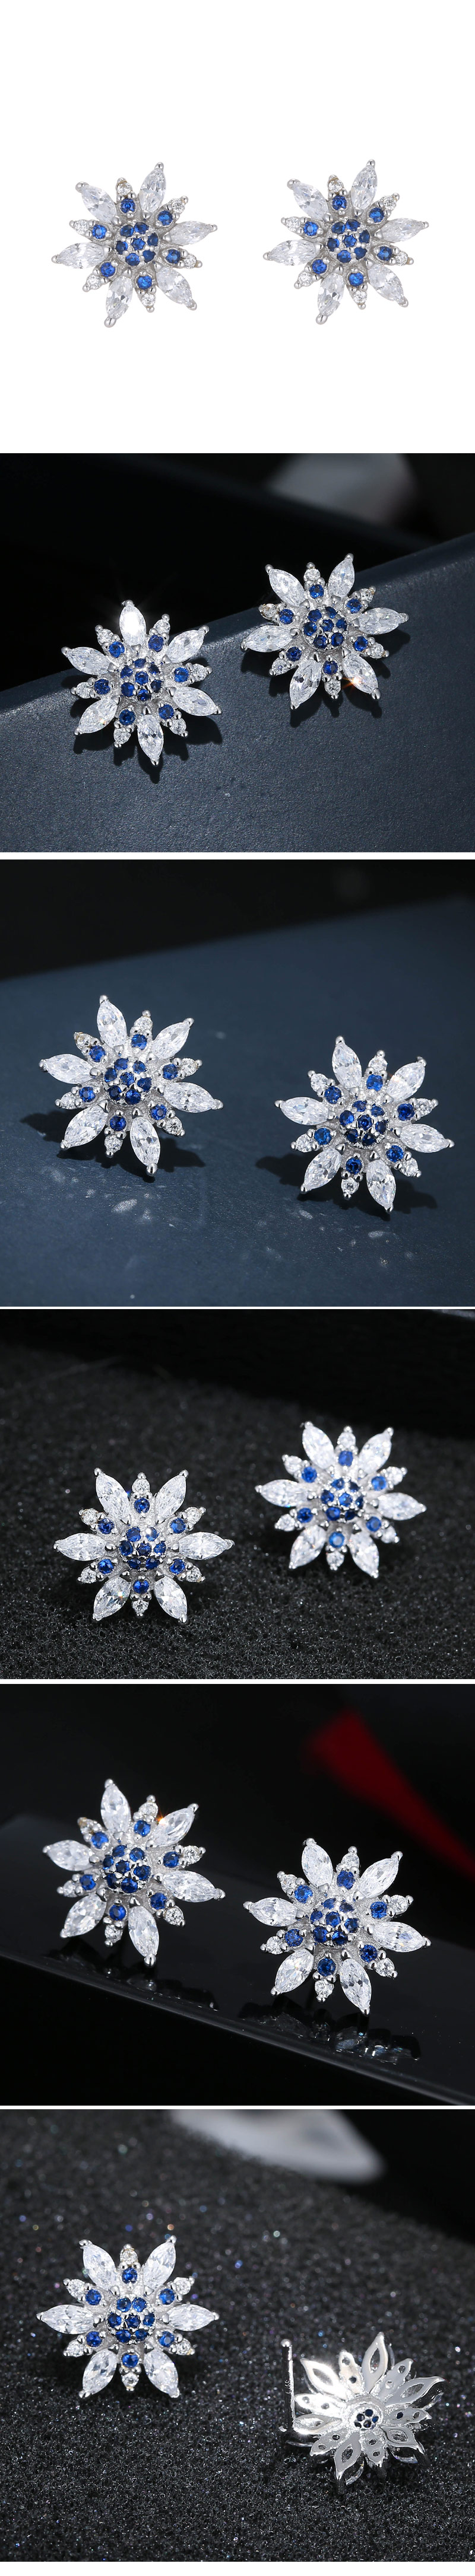 Yi wu jewelry Korean fashion sweet OL simple bright sun flower zircon earrings wholesale NHSC205743